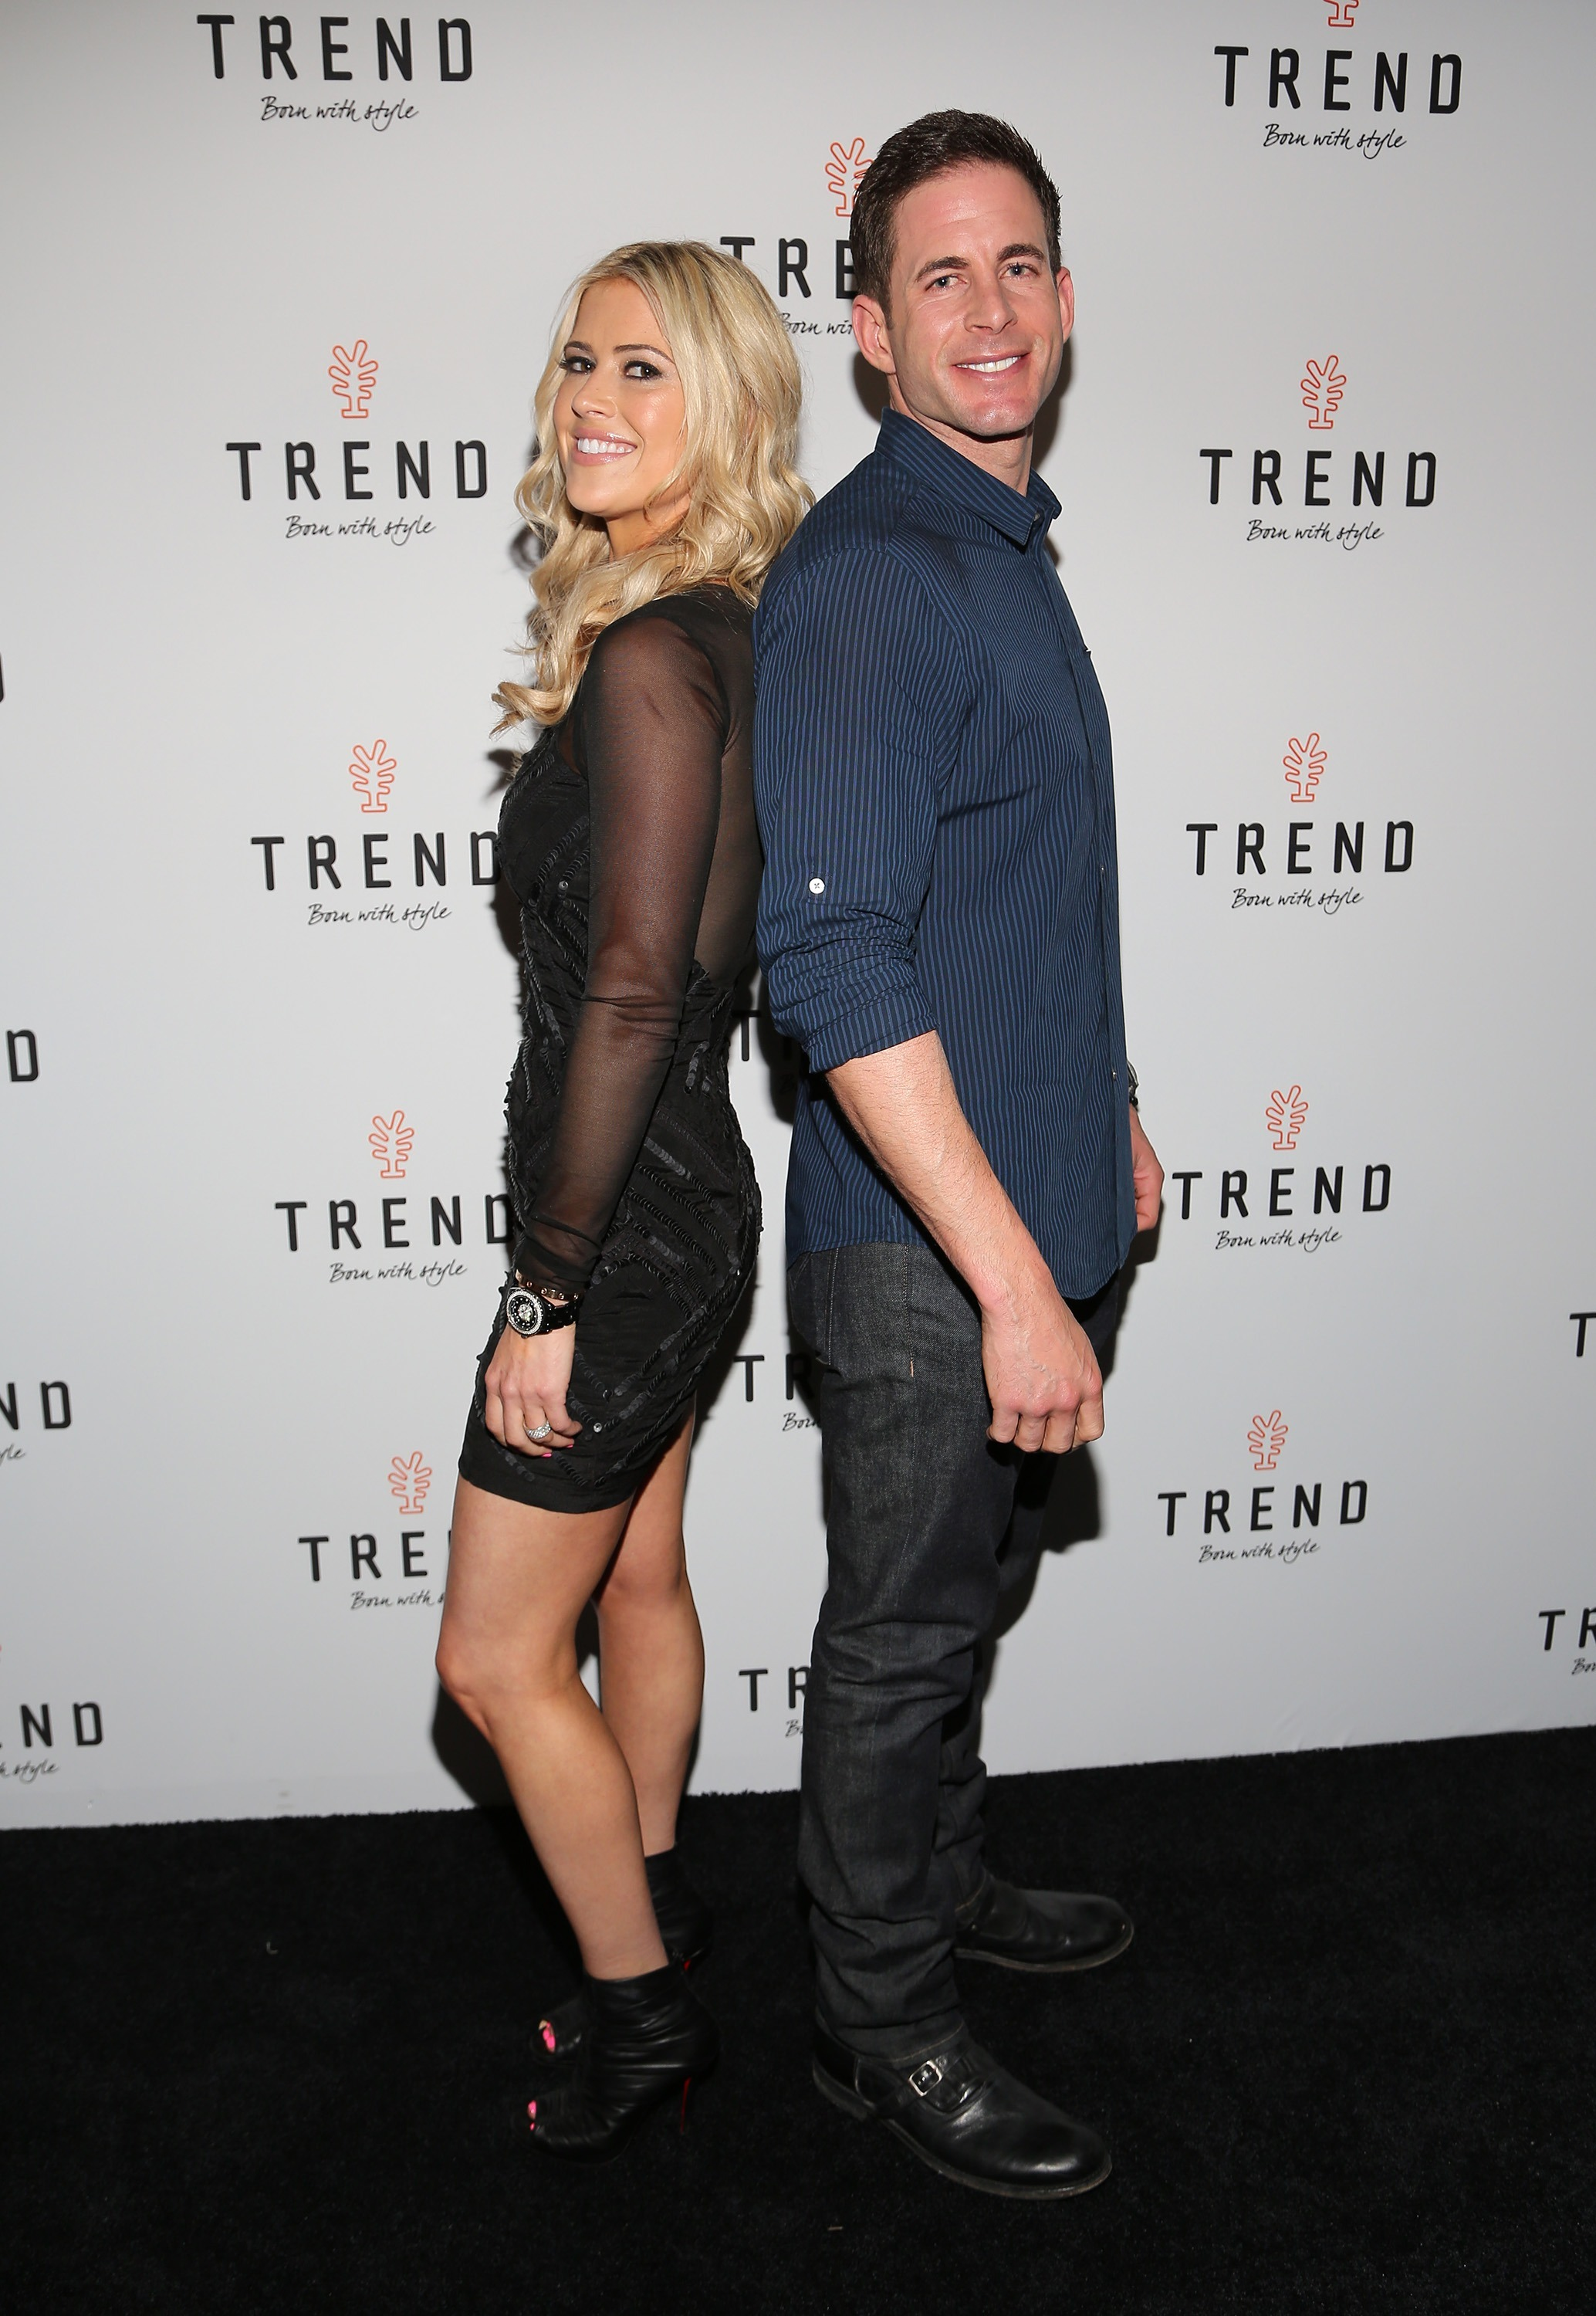 'Flip or Flop' stars won't be paid for spin offs